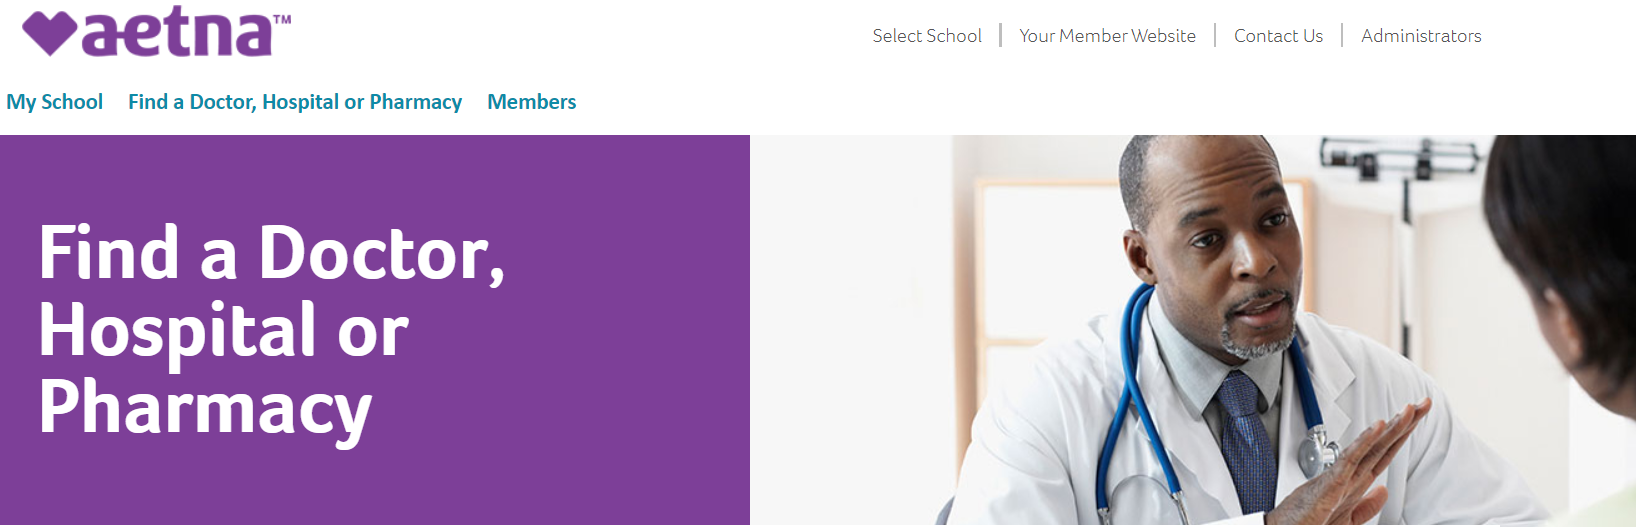 Go to Aetna Student Health website to use find a doctor tool